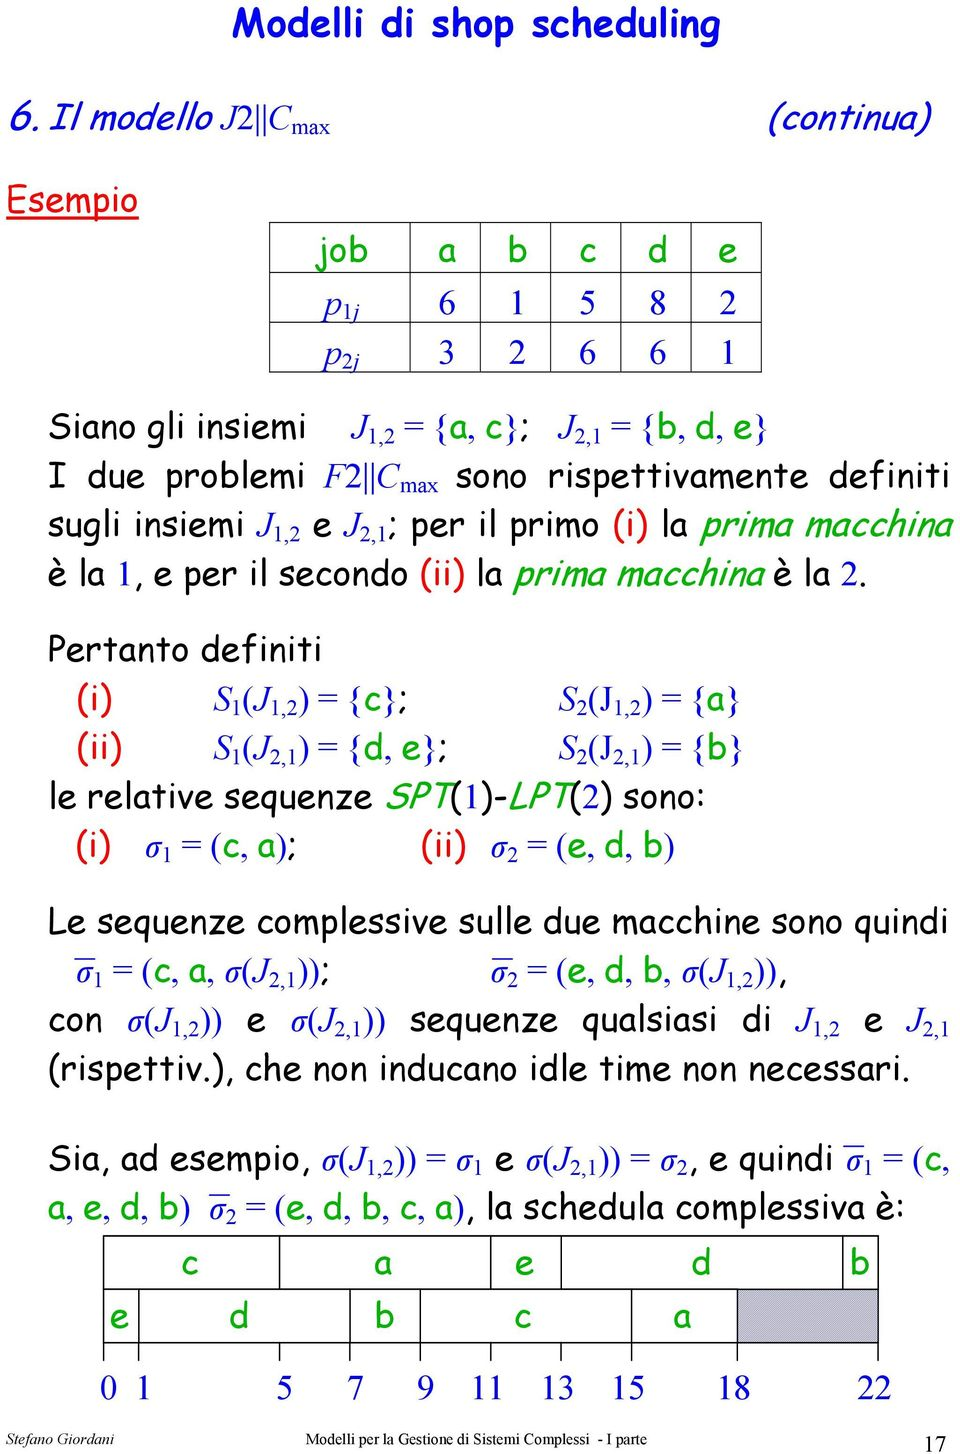 Pertanto definiti (i) S 1 (J 1,2 ) = {c}; S 2 (J 1,2 ) = {a} (ii) S 1 (J 2,1 ) = {d, e}; S 2 (J 2,1 ) = {b} le relative sequenze SPT(1)-LPT(2) sono: (i) σ 1 = (c, a); (ii) σ 2 = (e, d, b) Le sequenze